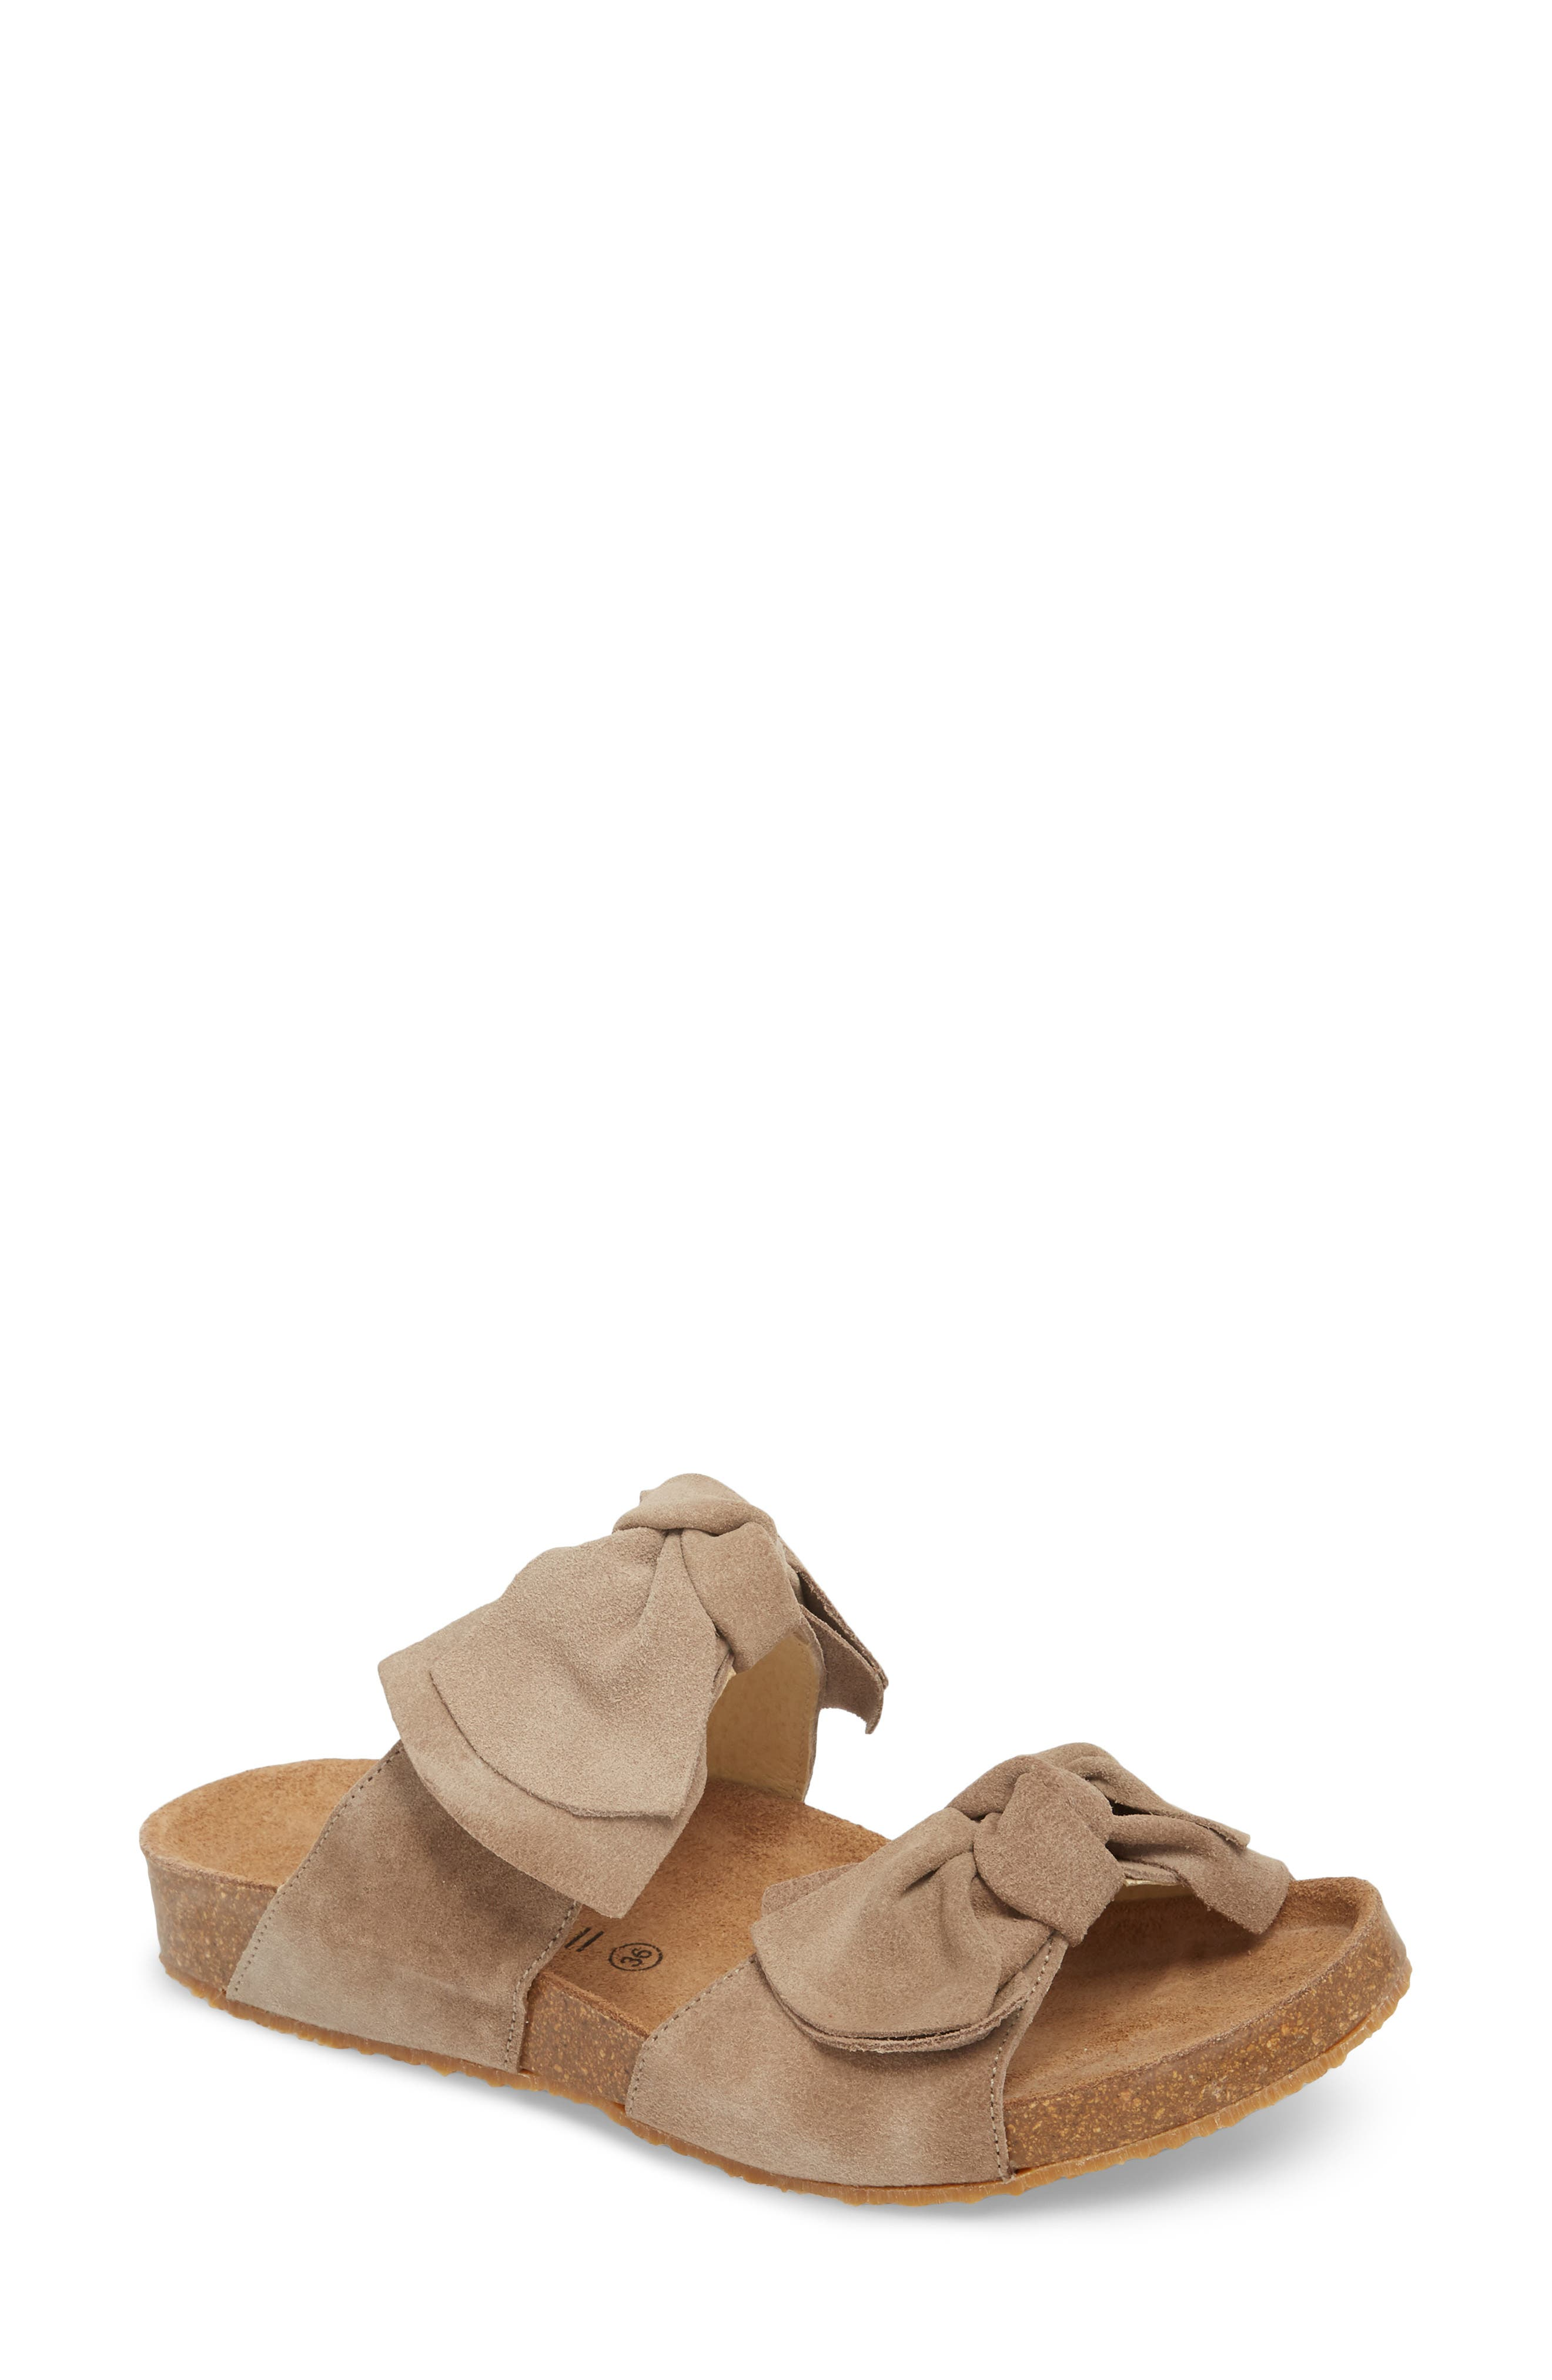 JEFFREY CAMPBELL Lanai-Es Slide Sandal, Main, color, 200